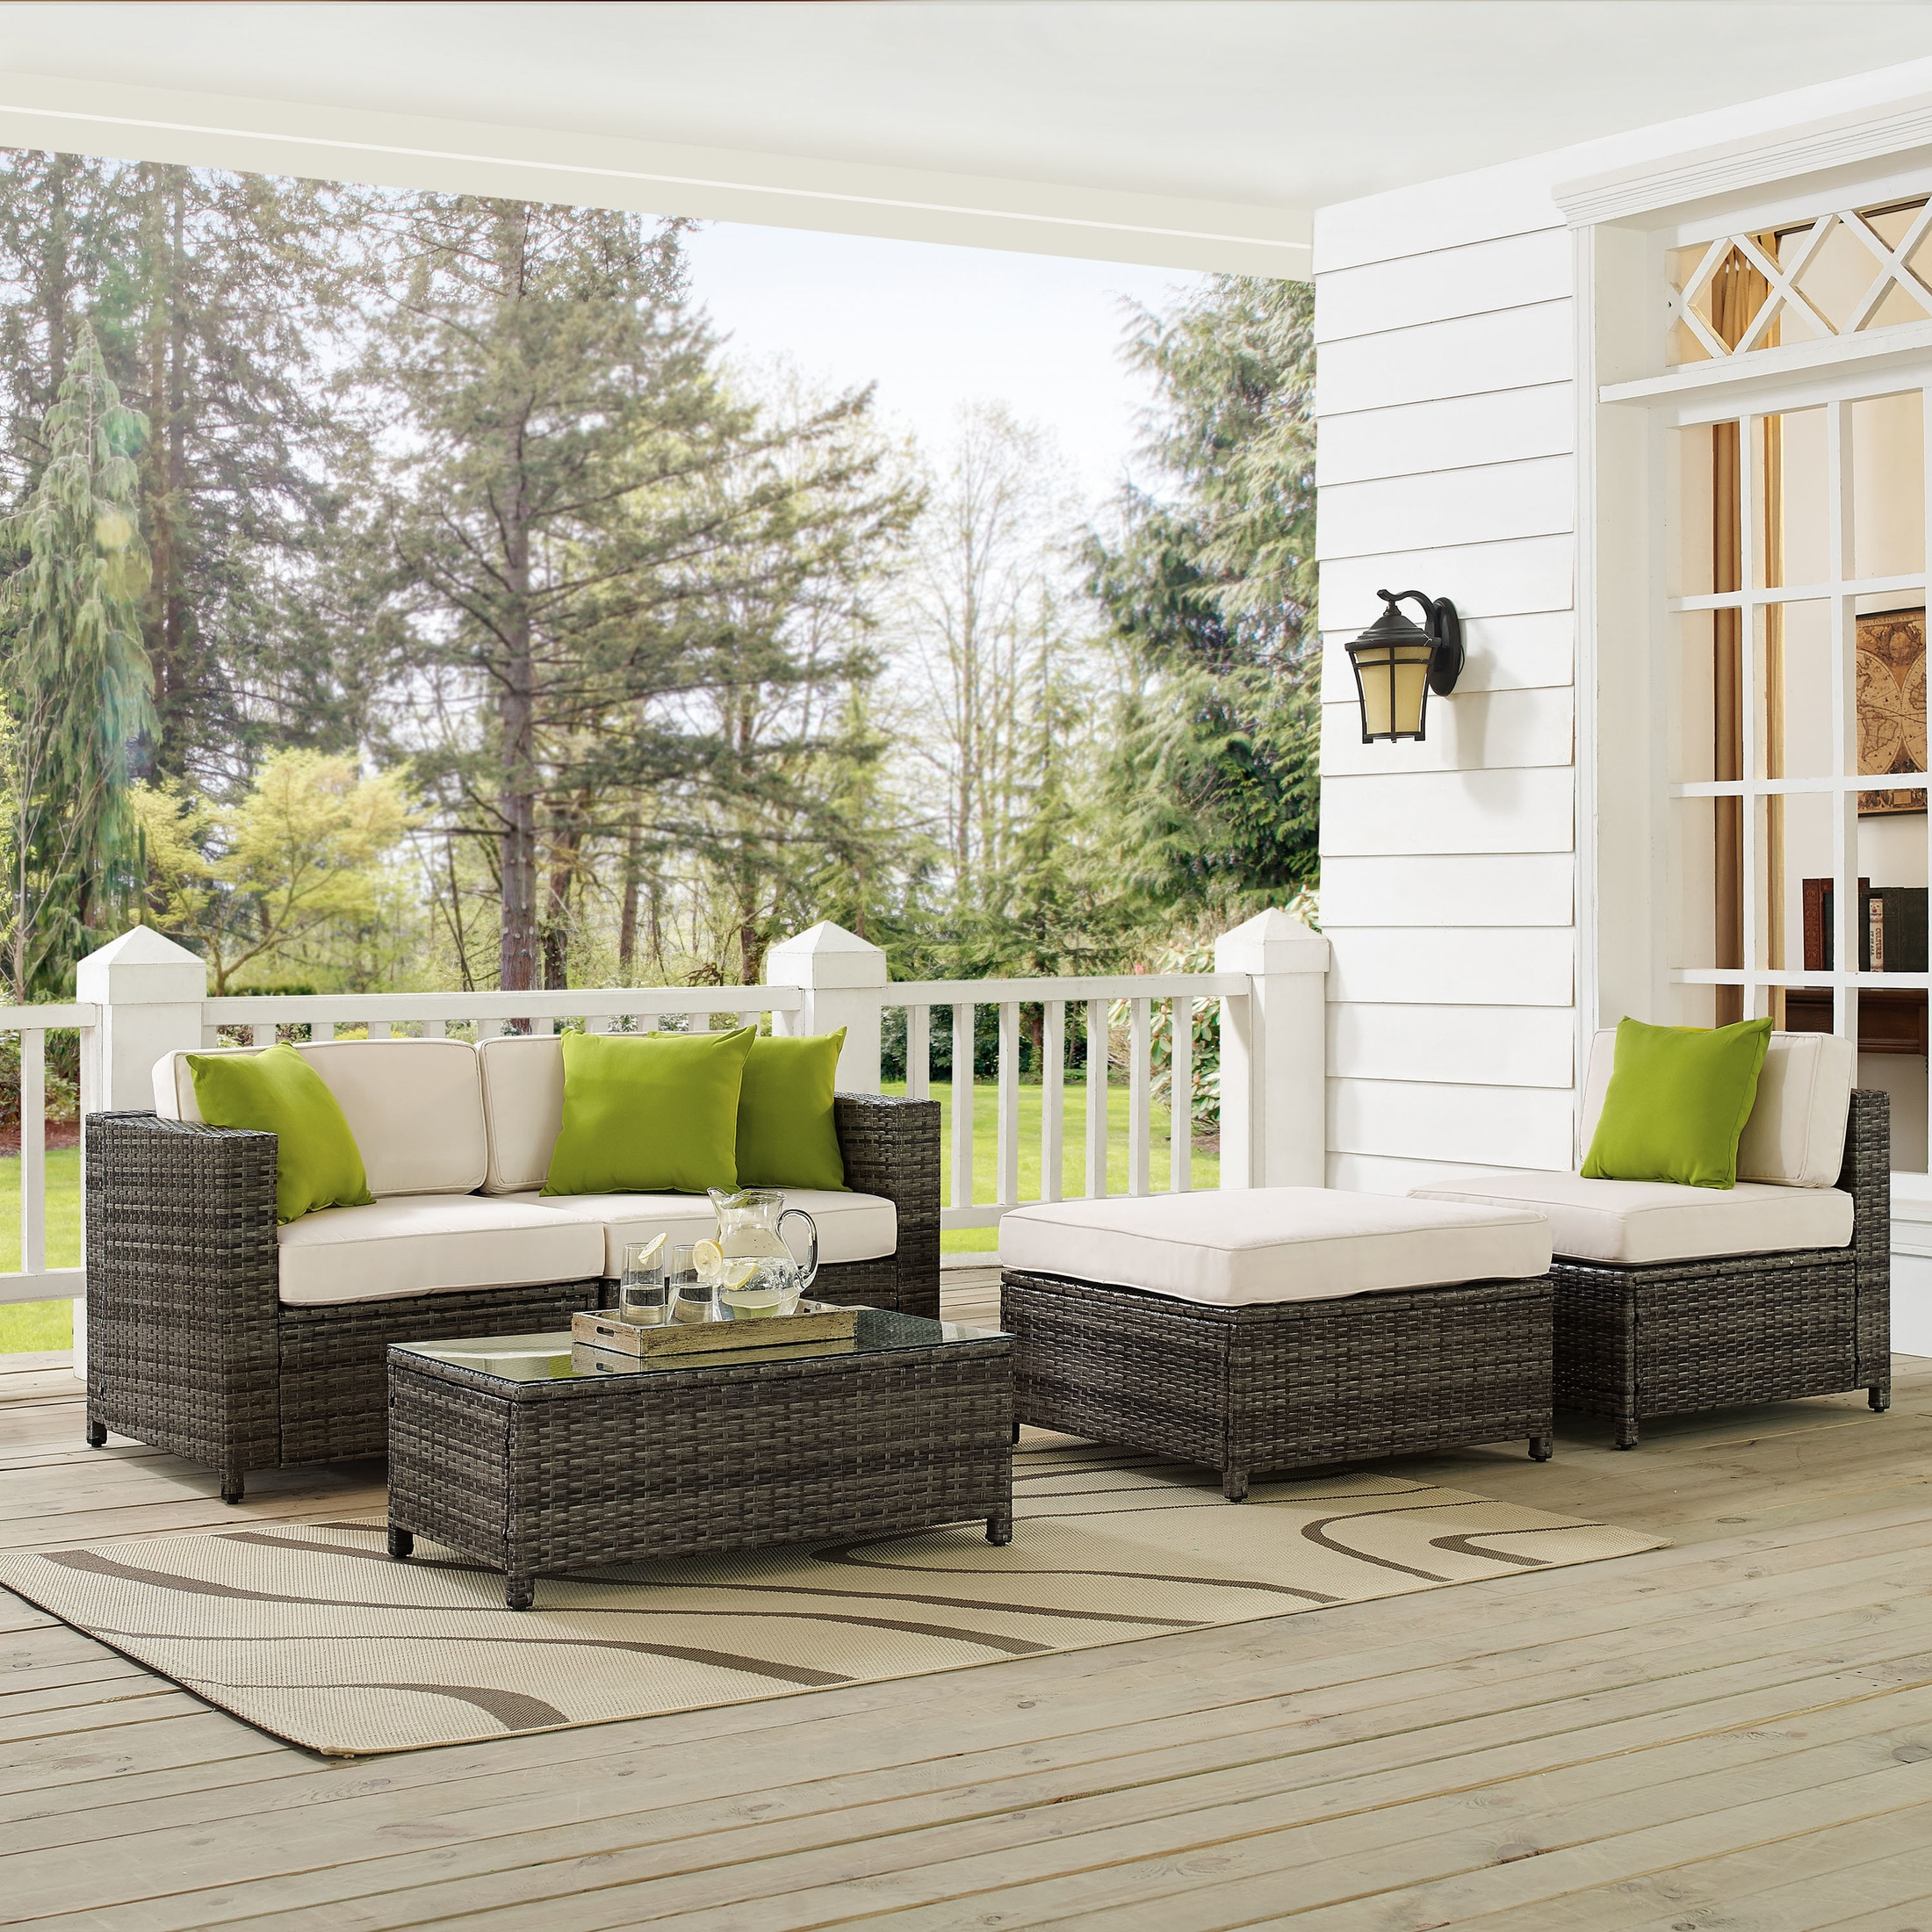 Outdoor Furniture - Lakeside 2-Piece Outdoor Loveseat, Armless Chair, Ottoman, and Coffee Table Set